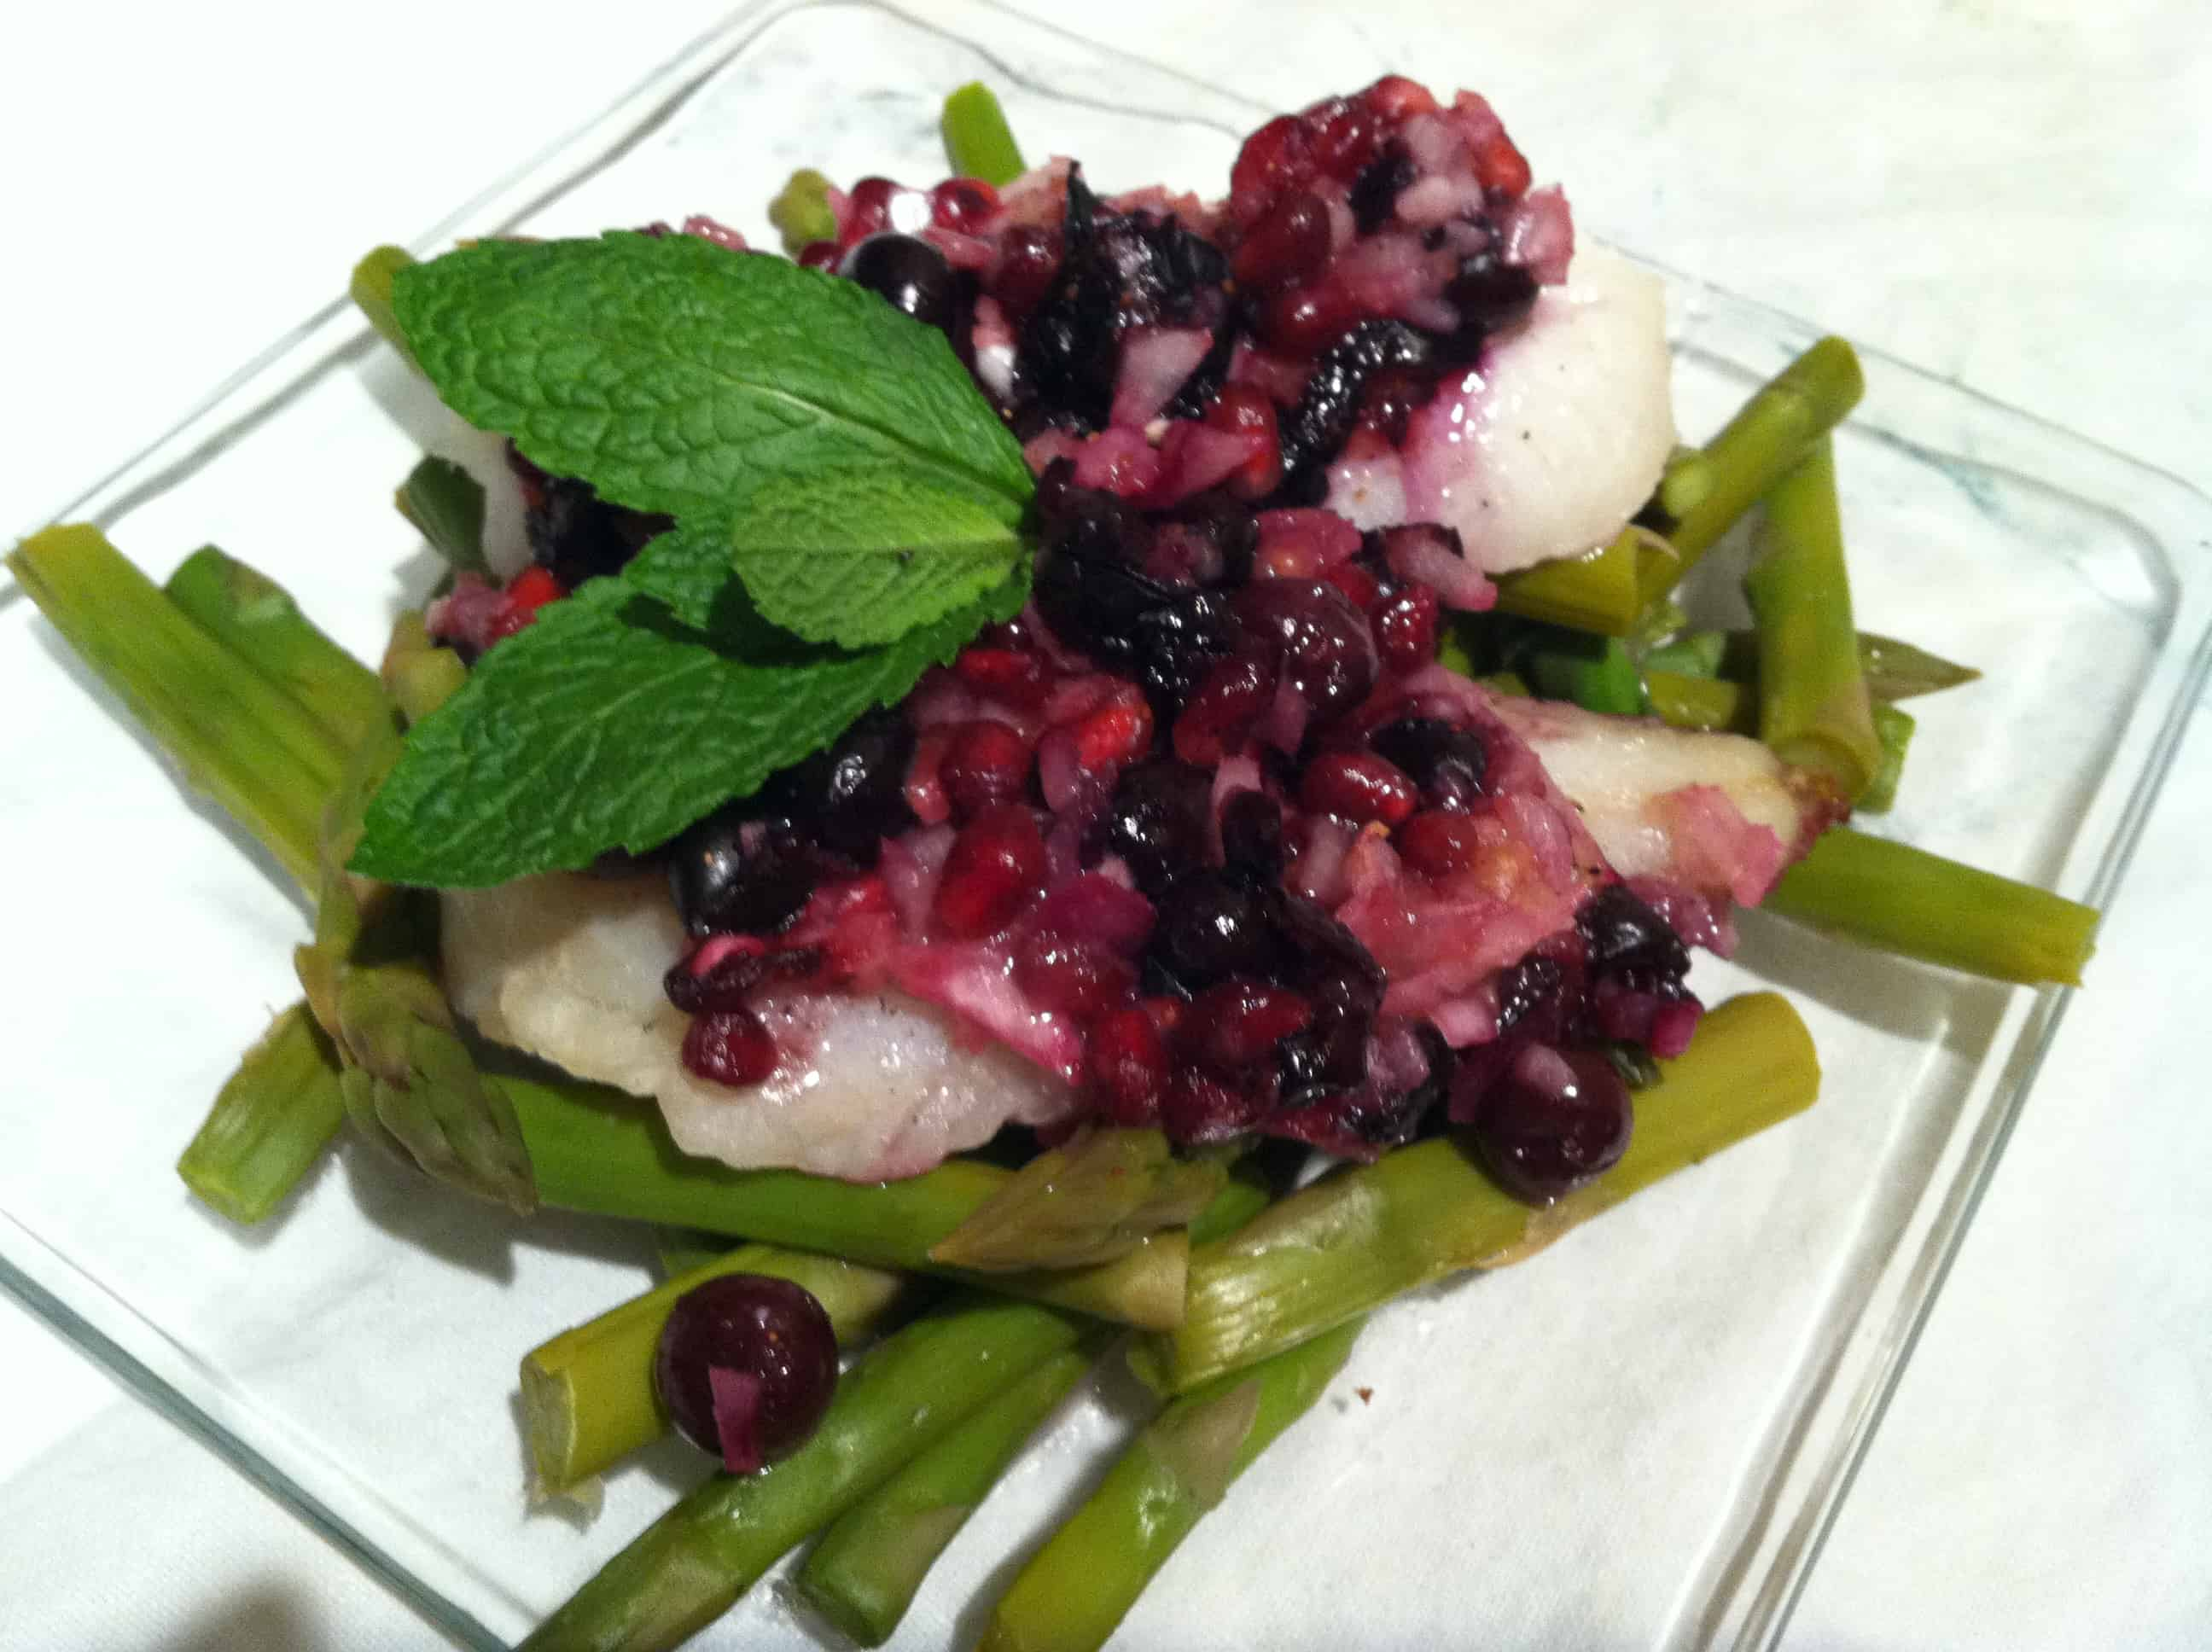 Pomegranate-Blueberry Baked Cod